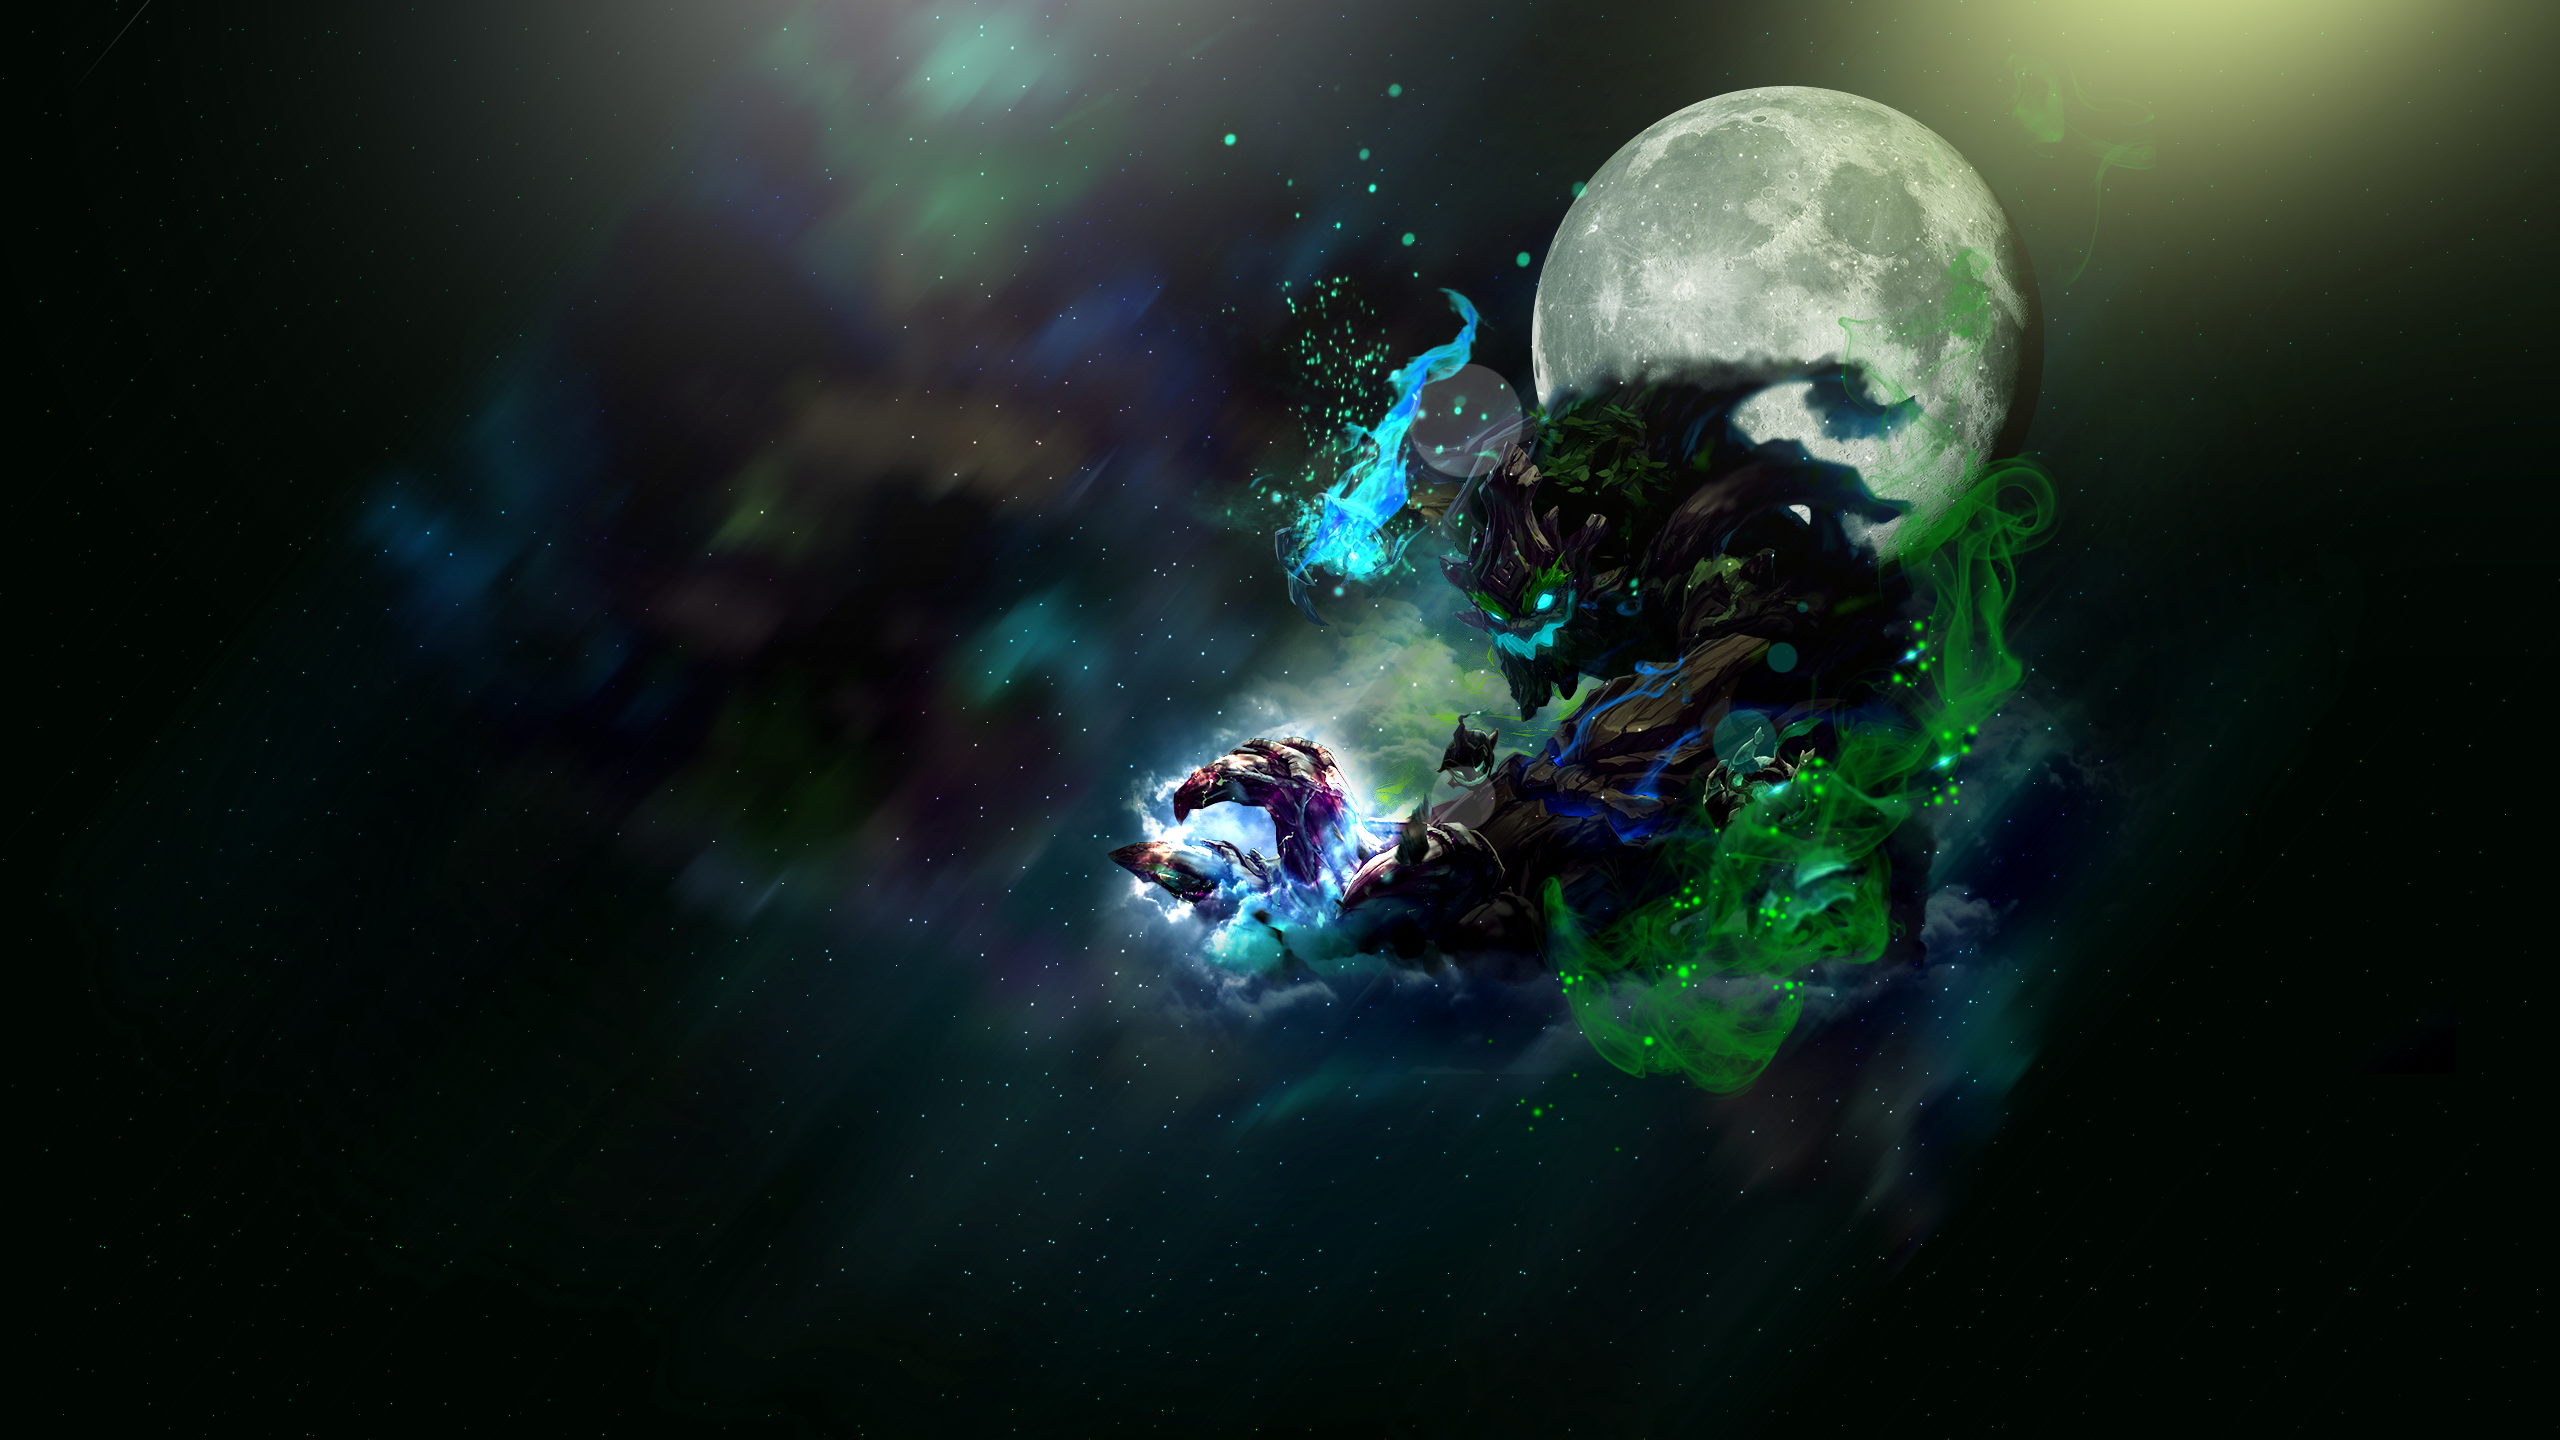 Maokai wallpaper